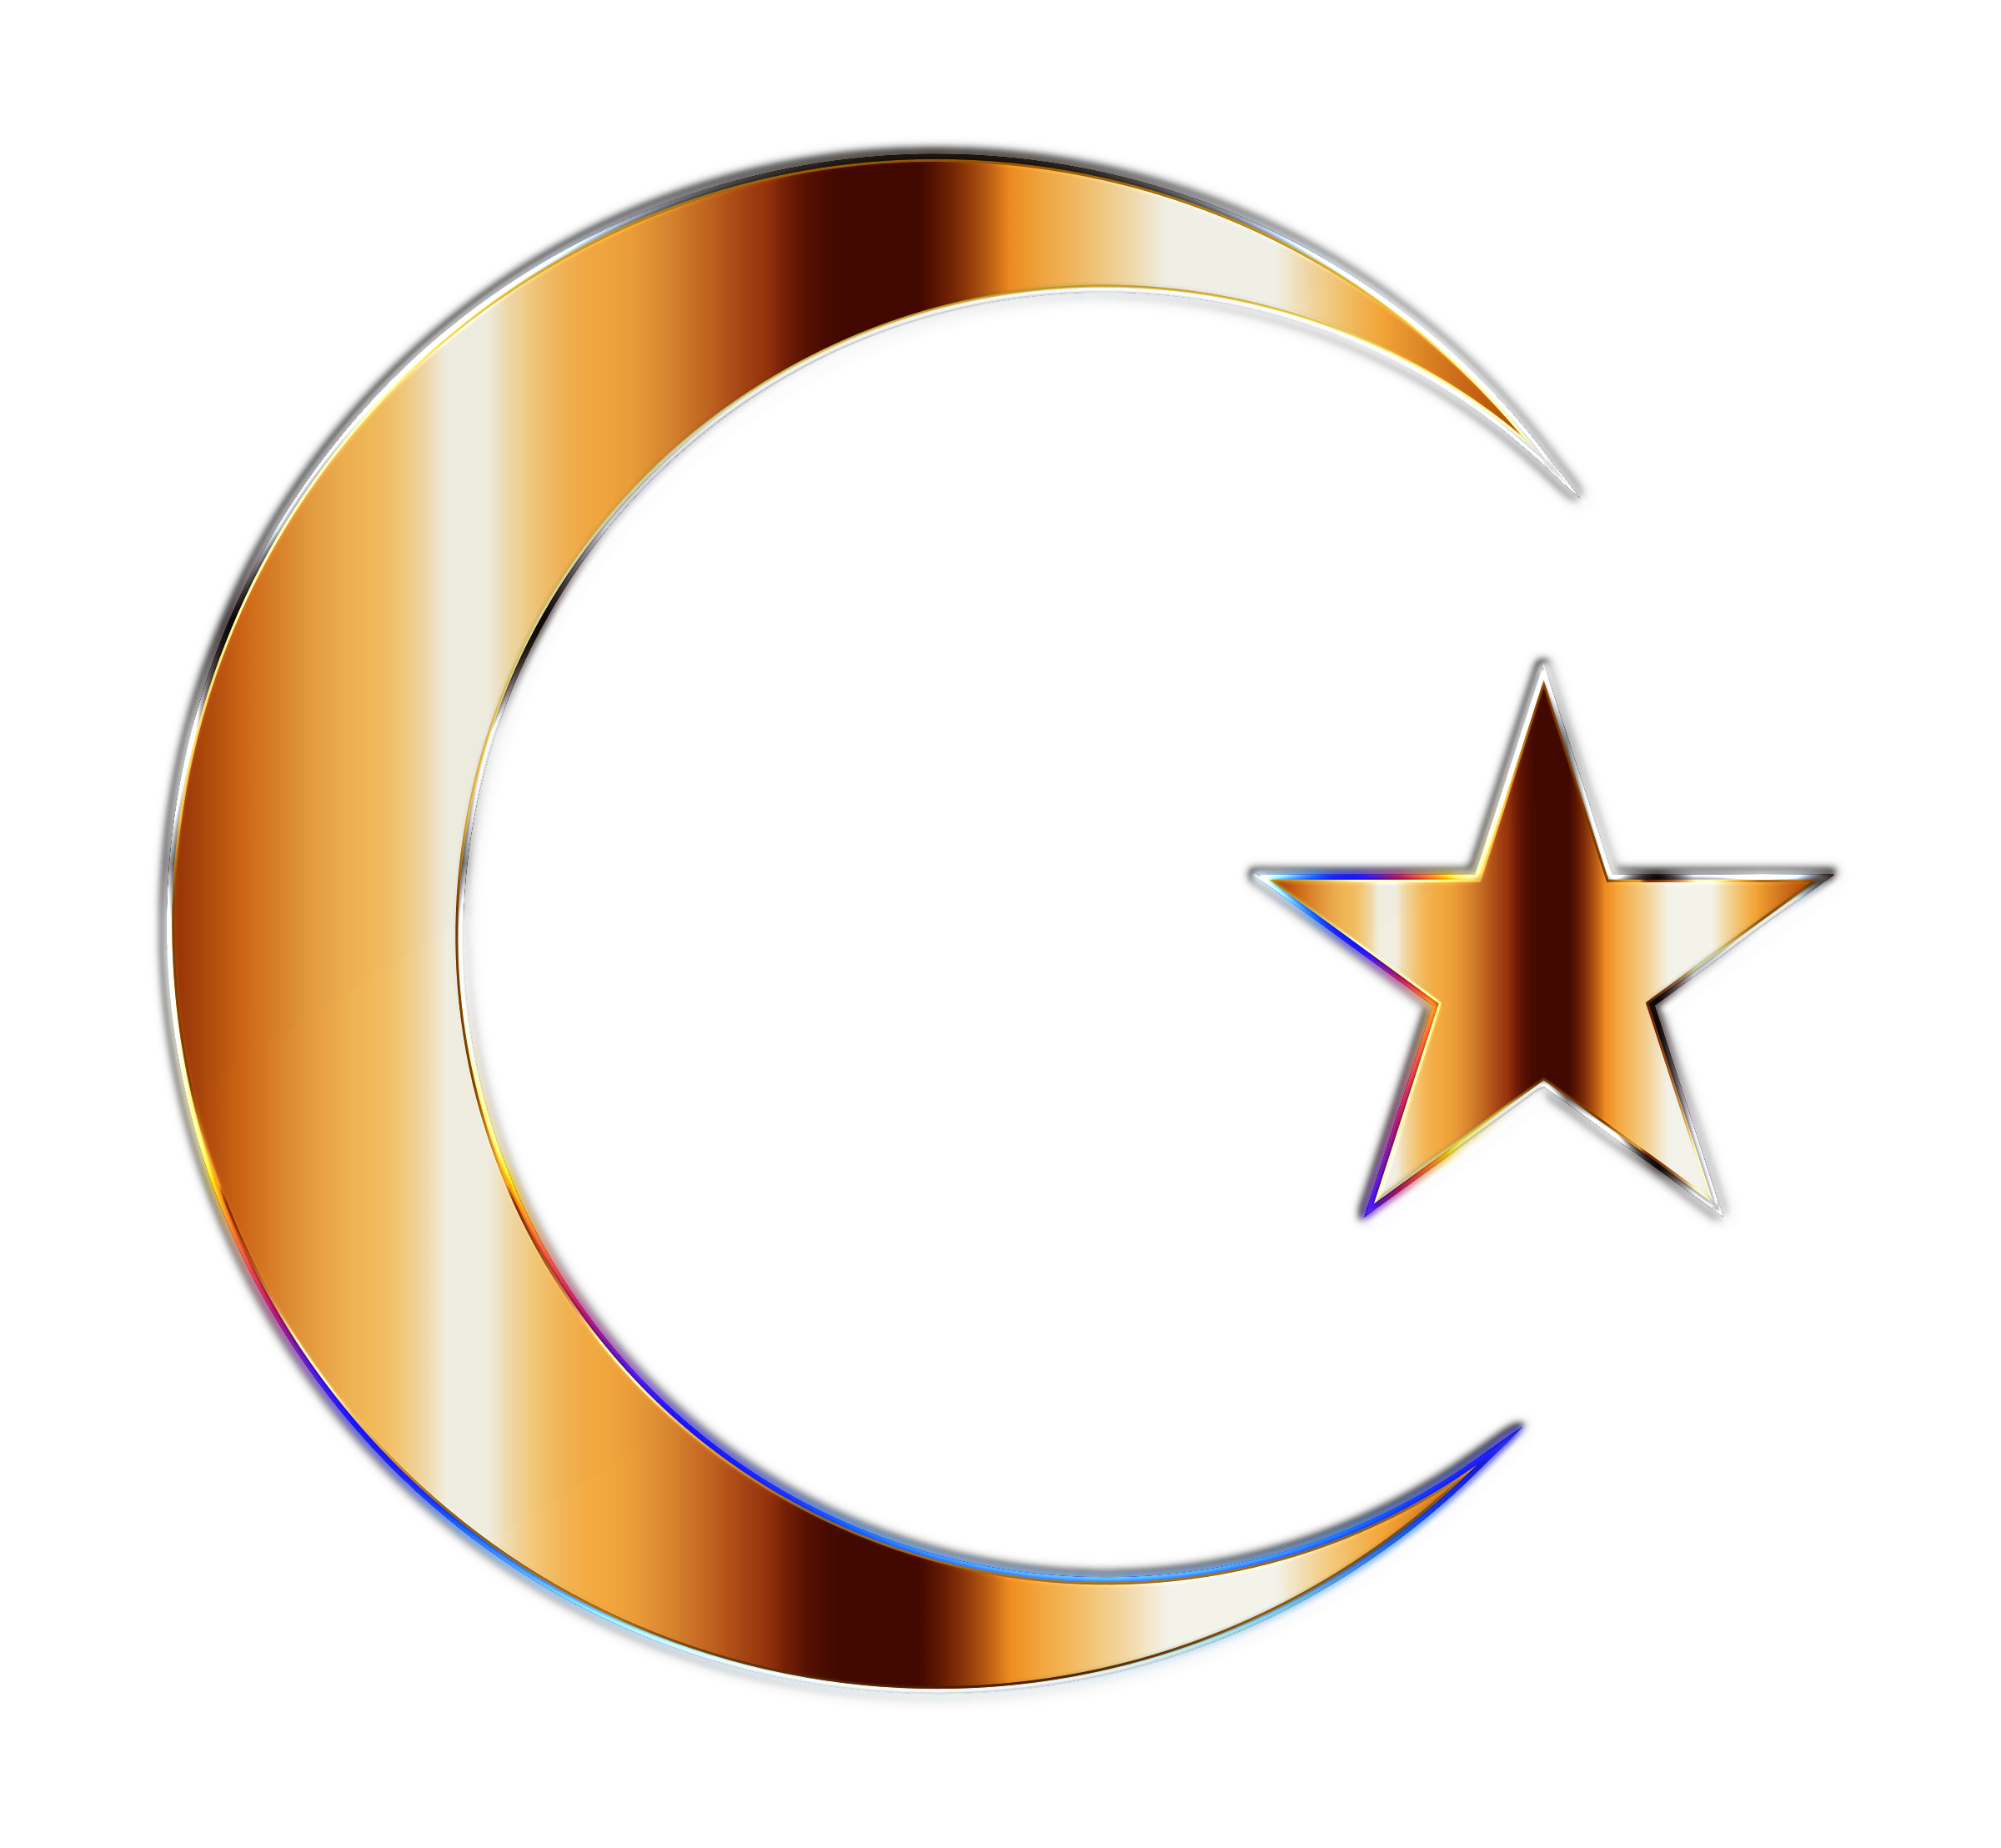 Moon and star clipart image transparent stock Clipart - Golden Crescent Moon And Star image transparent stock